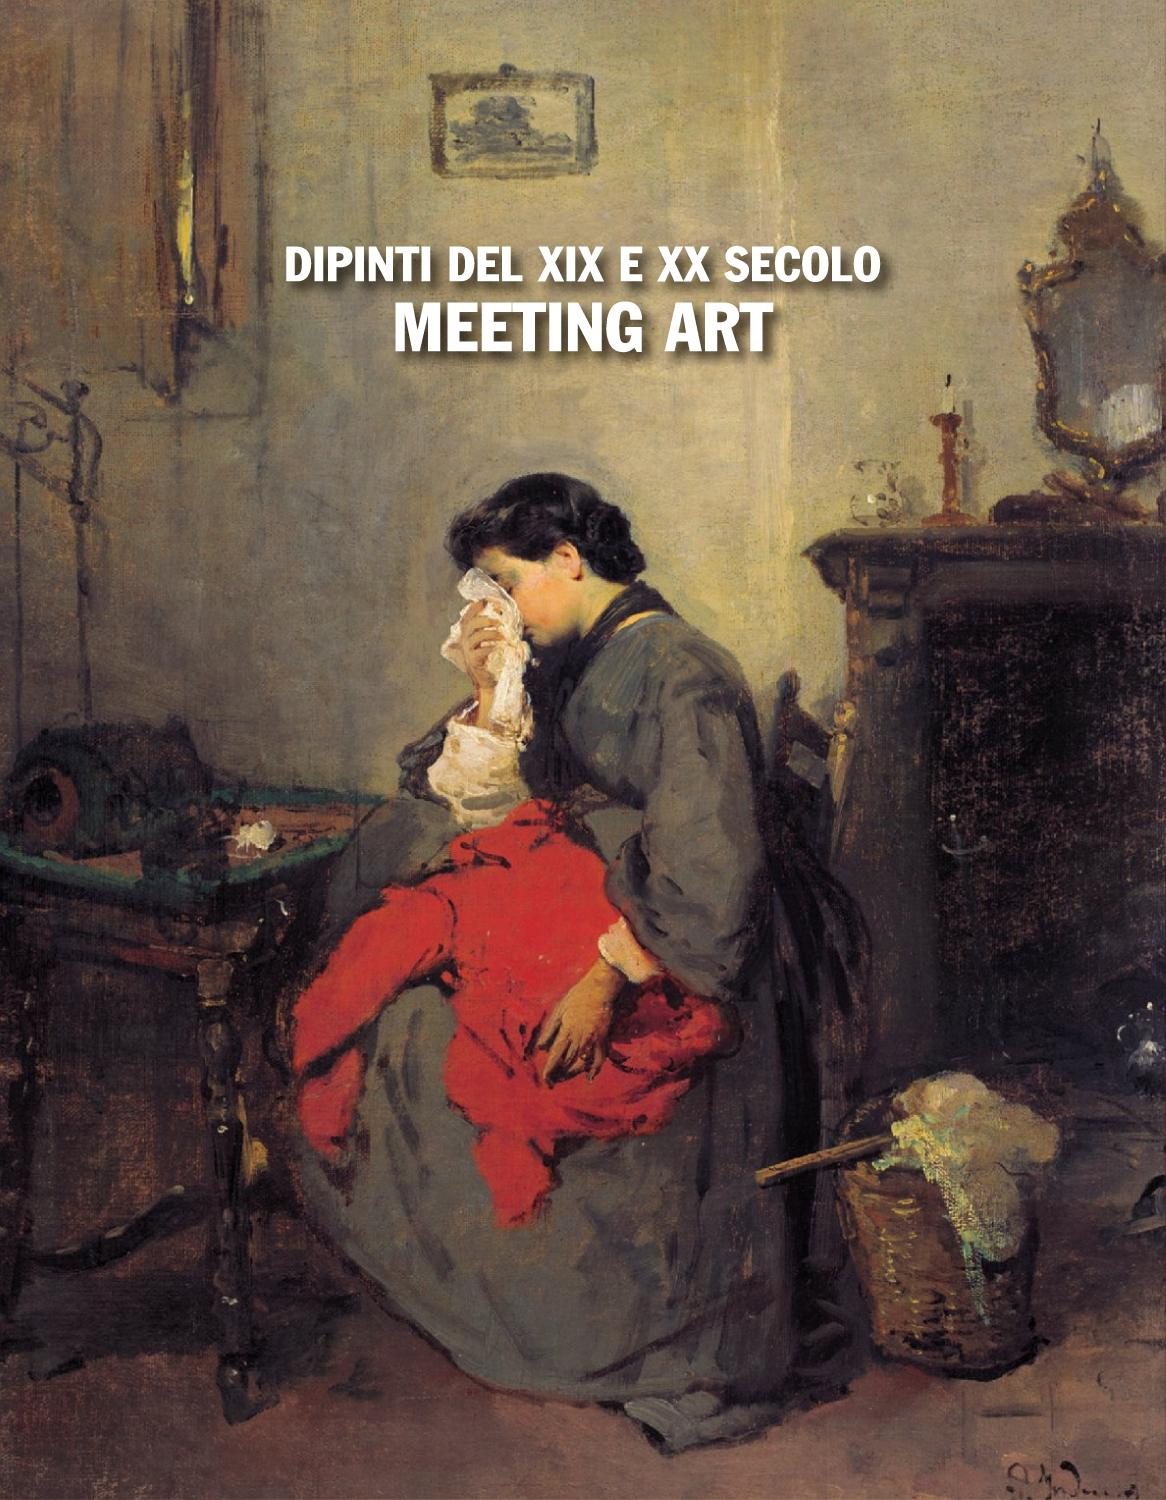 Asta 740 dipinti del xix e del xx secolo by meeting art for E case del sater